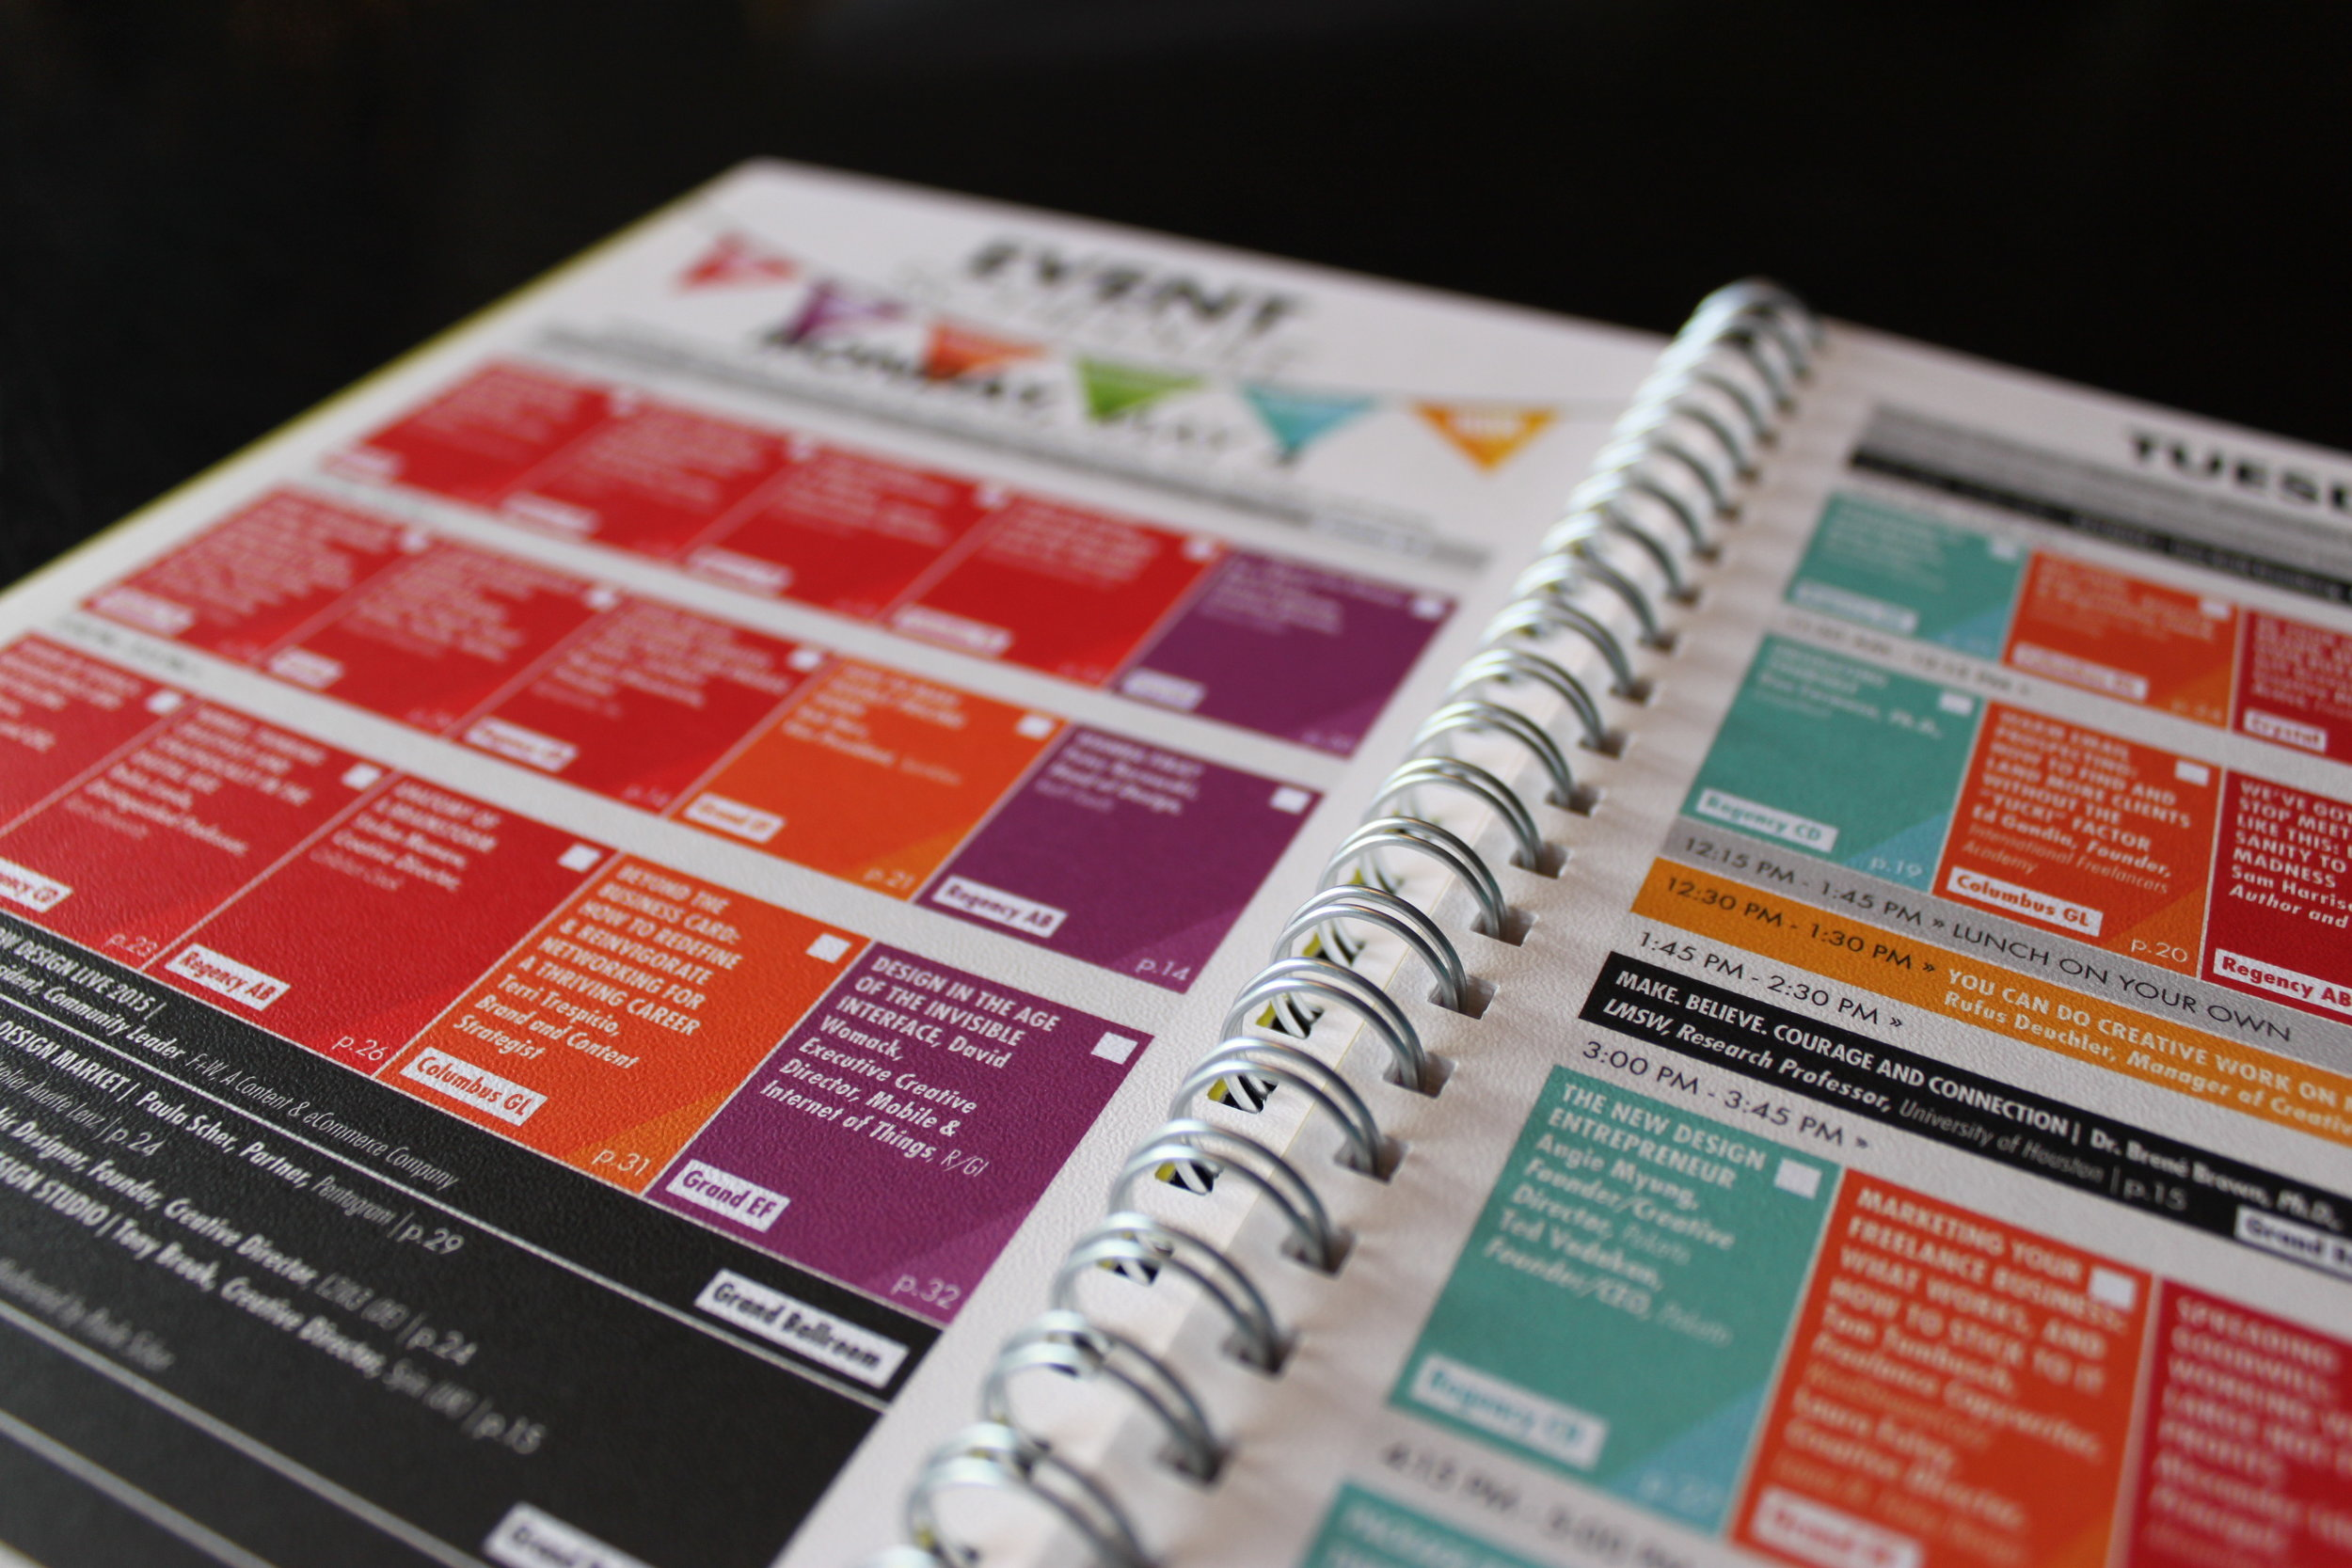 HOWLive 2015 Event Directory, F & W Publishing